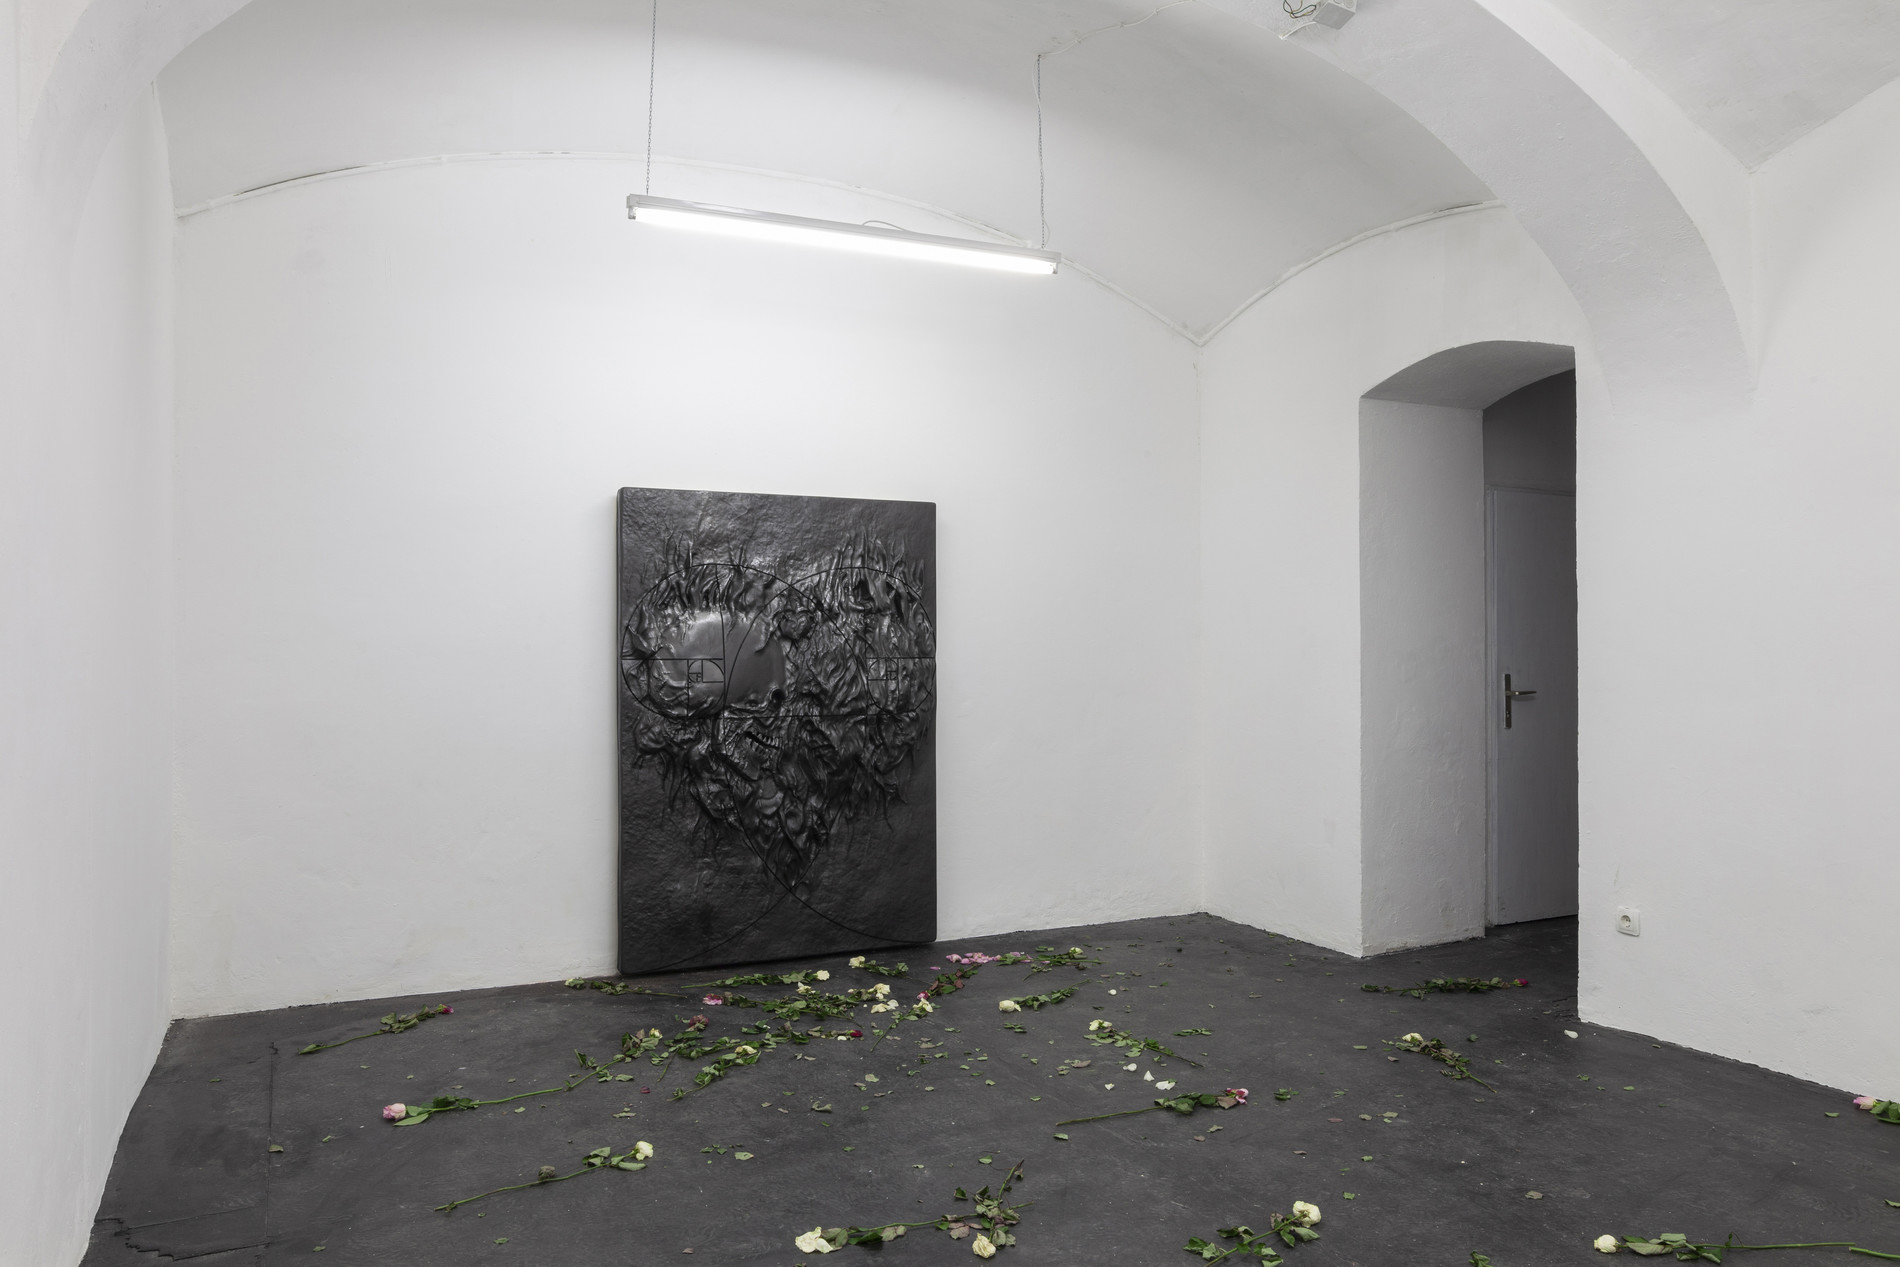 Julian Jakob Kneer, EVER AFTER, Shore Gallery, Vienna.